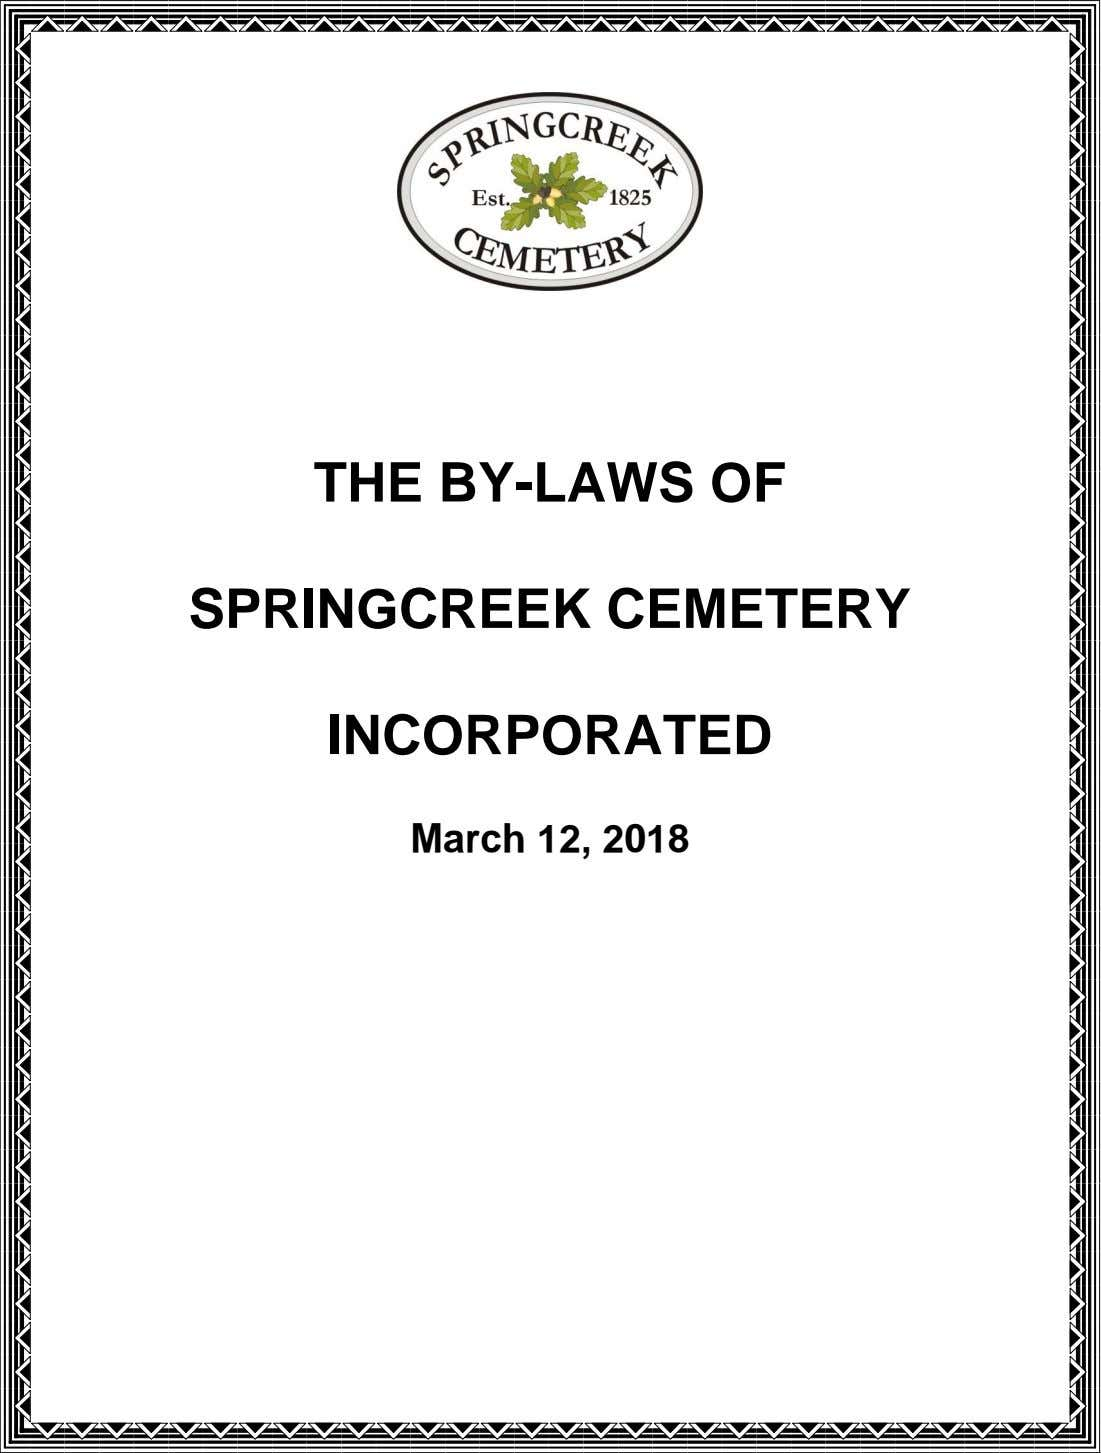 THE BY-LAWS OF SPRINGCREEK CEMETERY INCORPORATED March 12, 2018